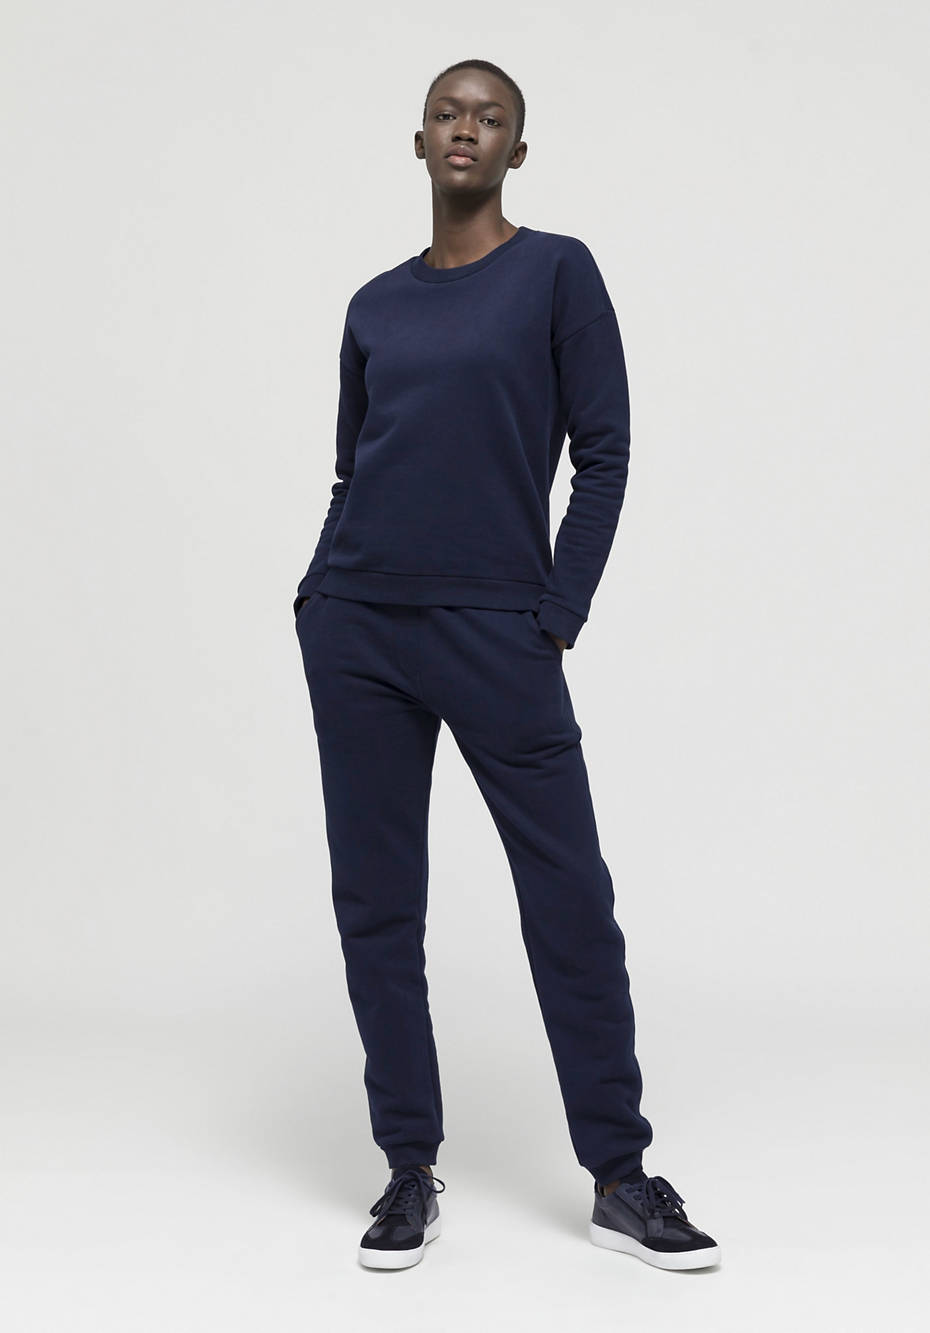 BedRecycling sweatshirt made from pure organic cotton